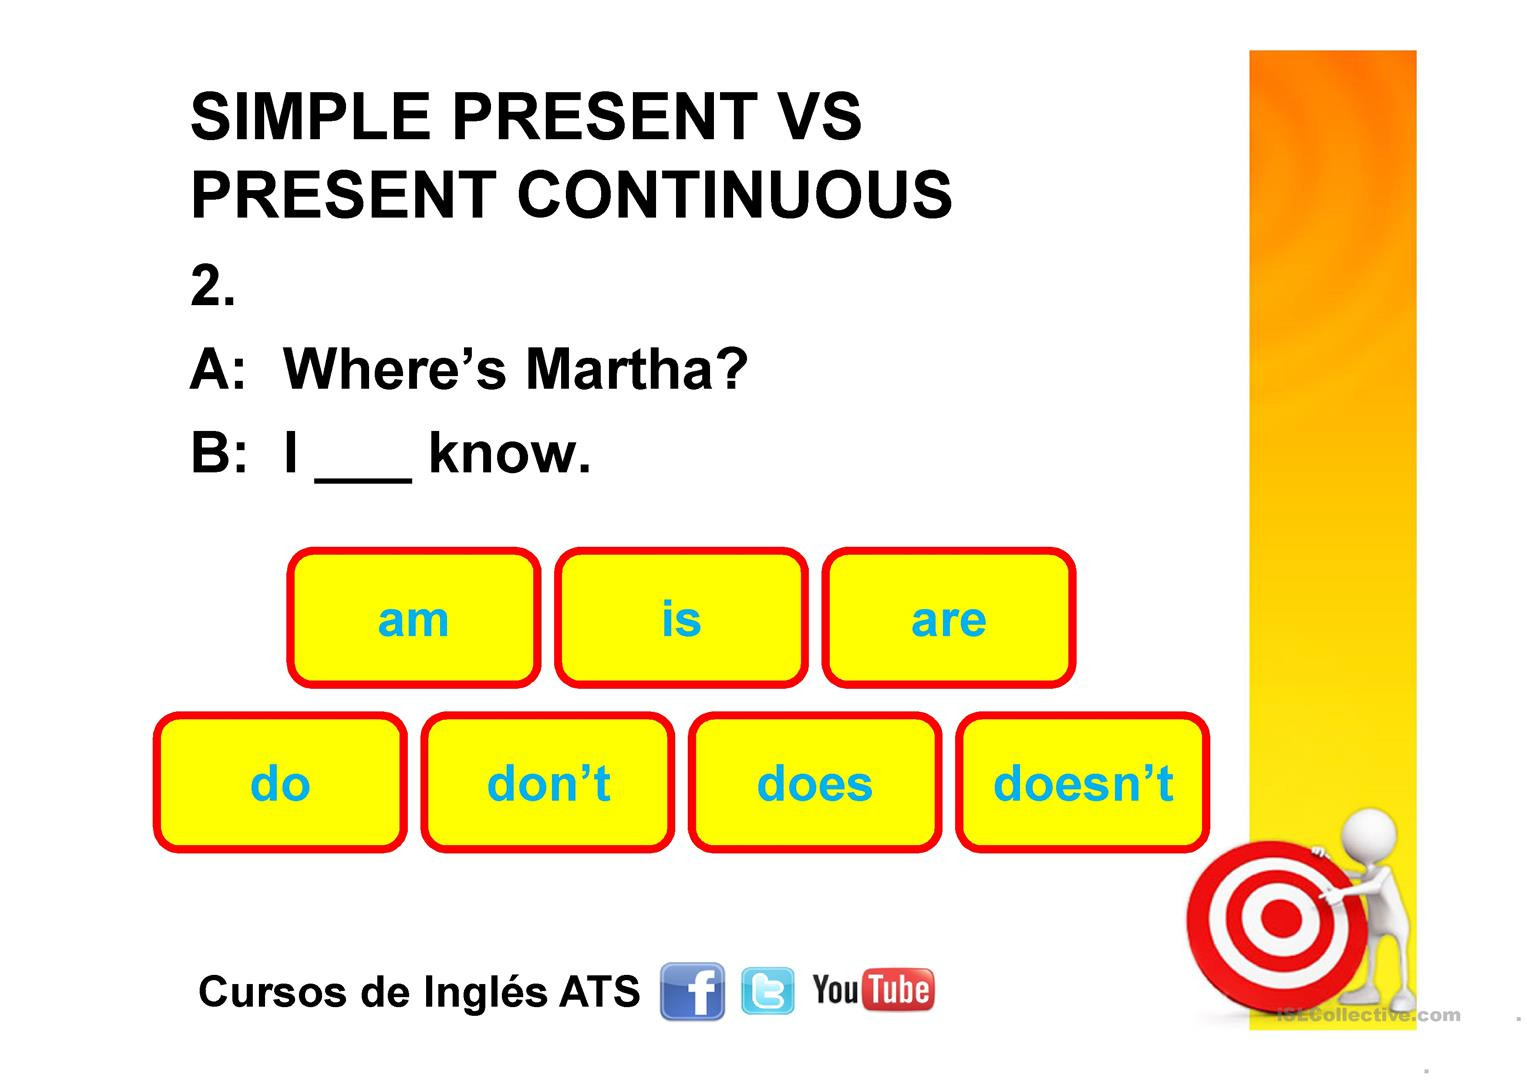 Simple Present Vs Present Continuous Worksheet